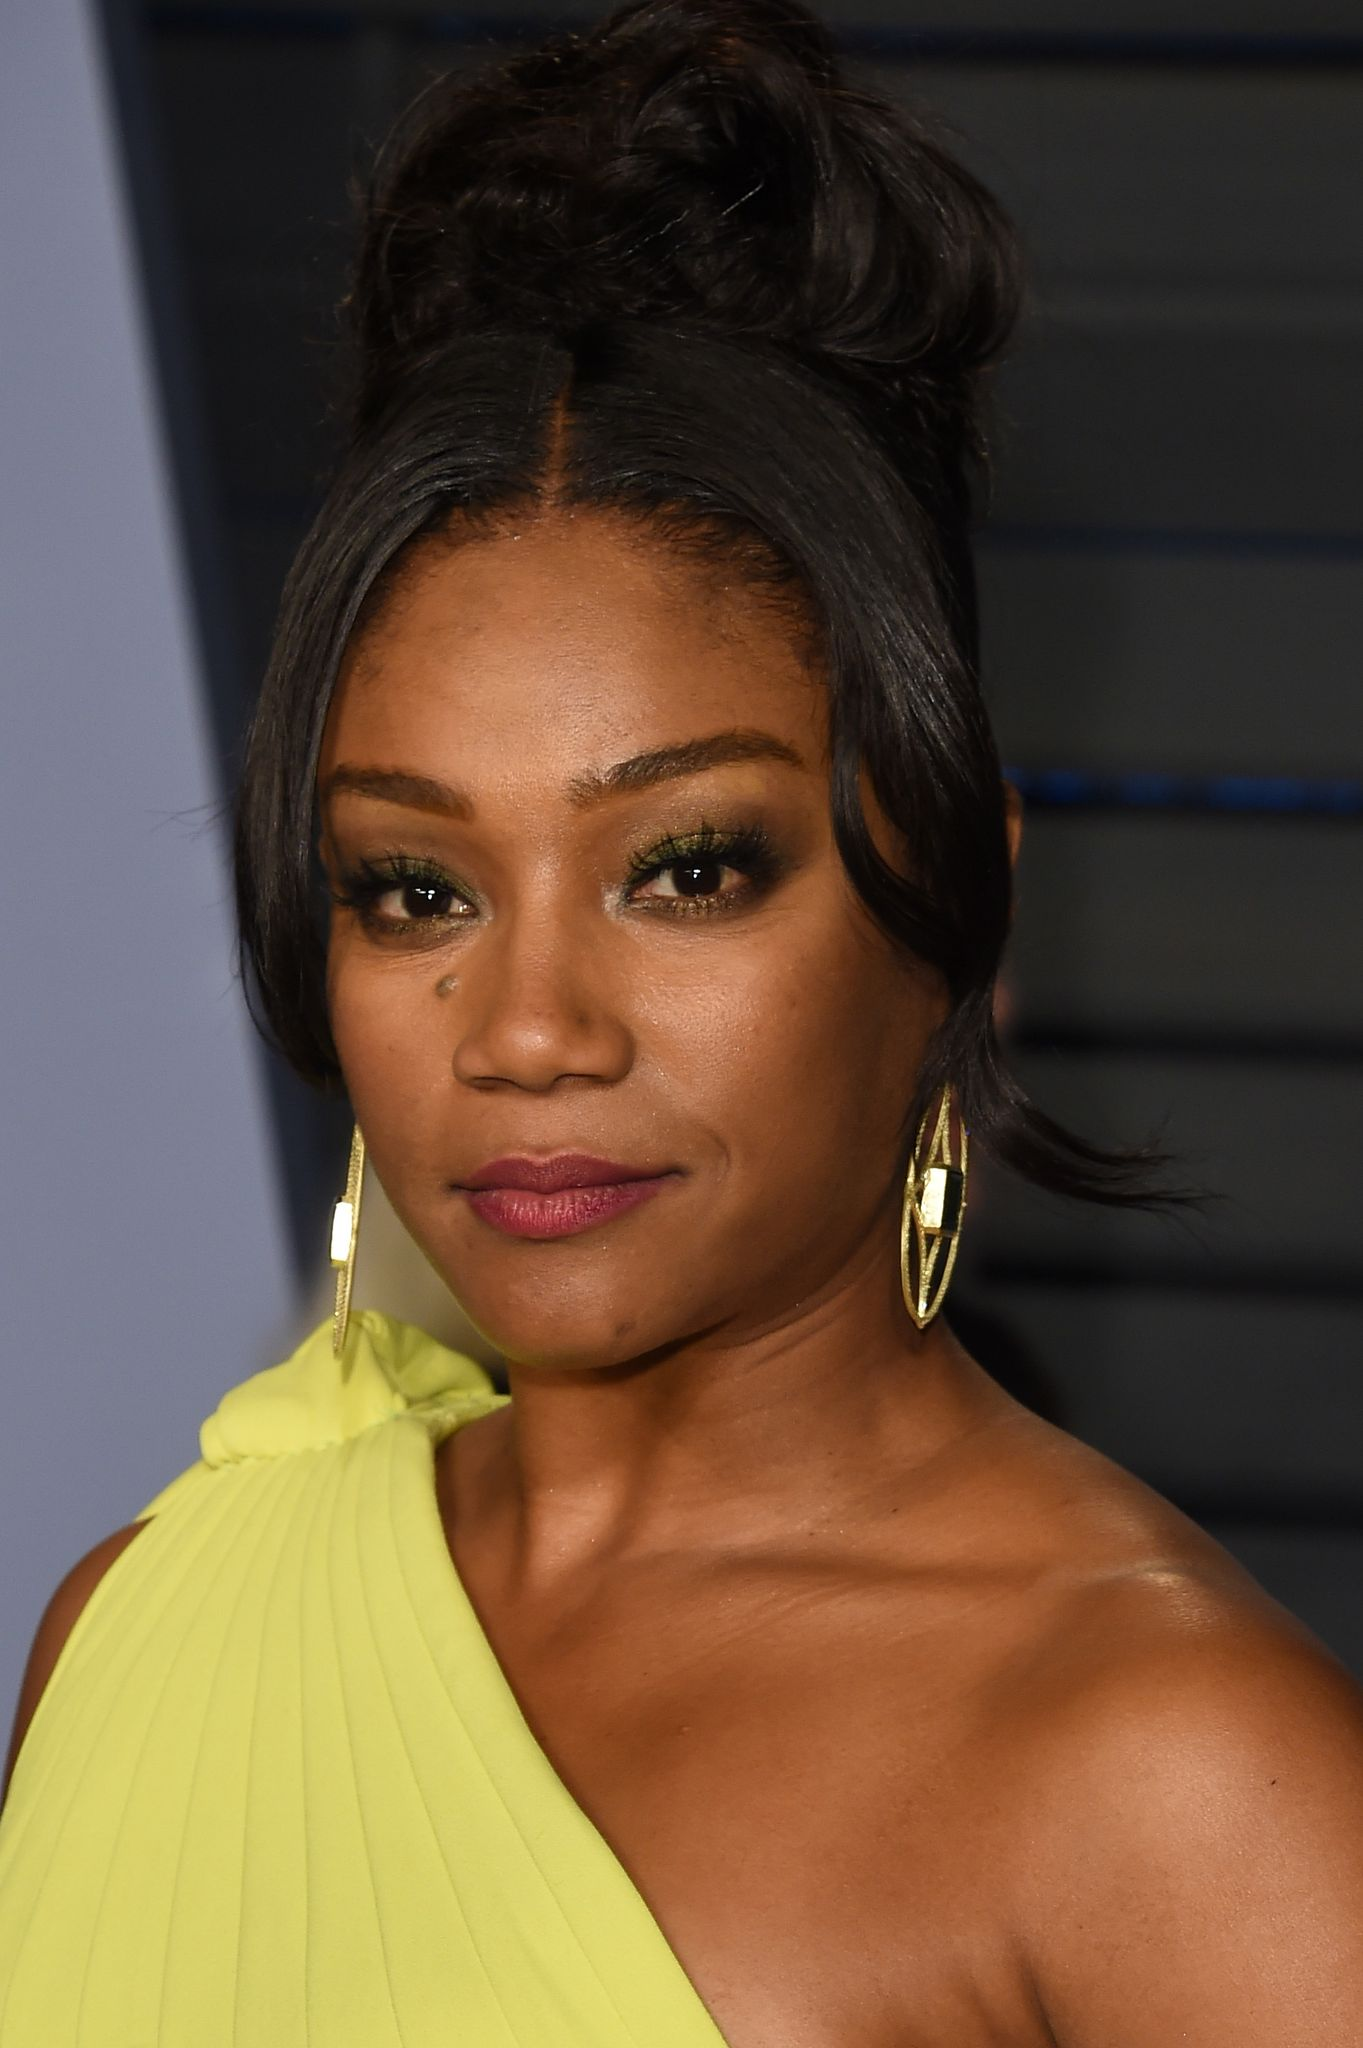 Tiffany Haddish attends the 2018 Vanity Fair Oscar Party hosted by Radhika Jones at the Wallis Annenberg Center for the Performing Arts on March 4, 2018   Photo: Getty Images